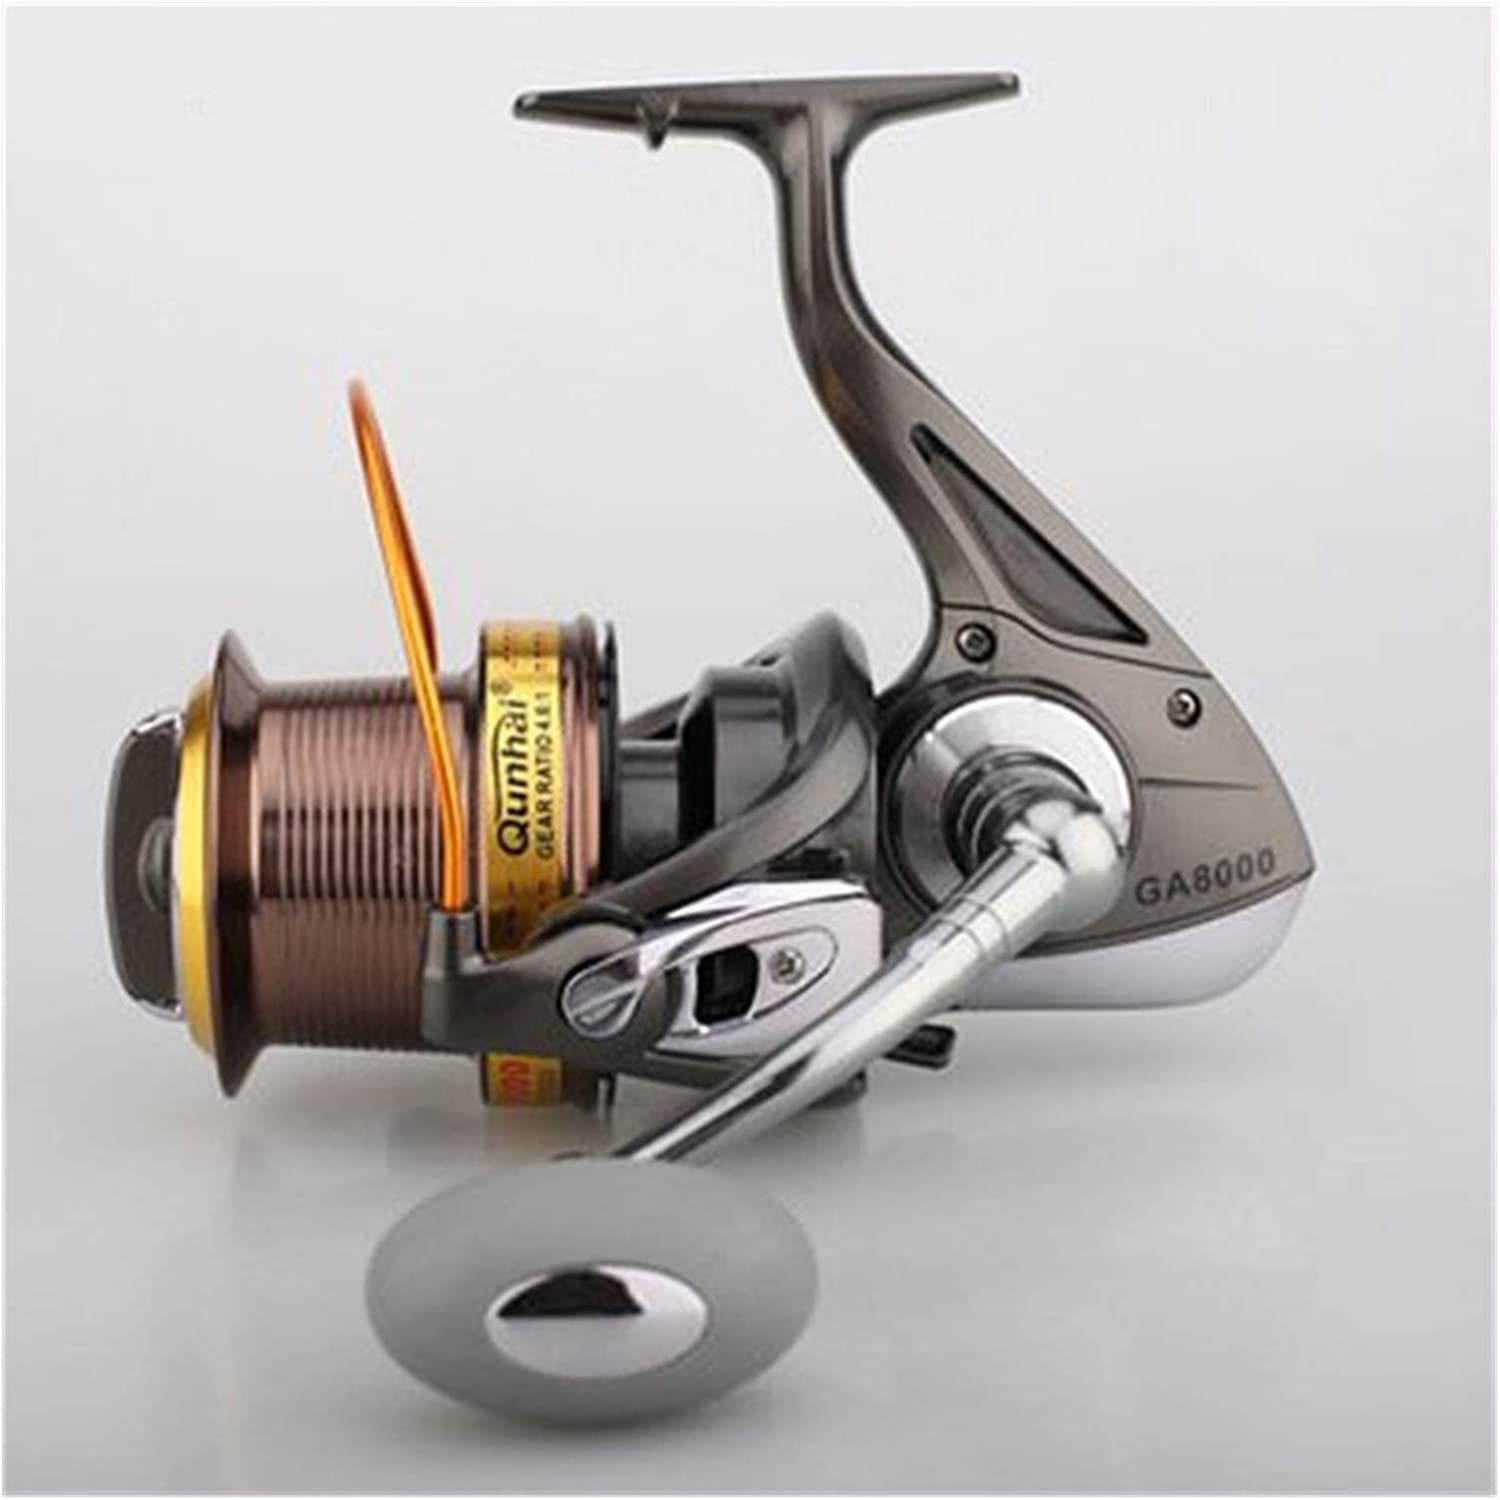 HUACHEN-LS Ranking TOP14 Fishing Direct sale of manufacturer reels 4.6:1 Reel Spinning Ratio 11+1